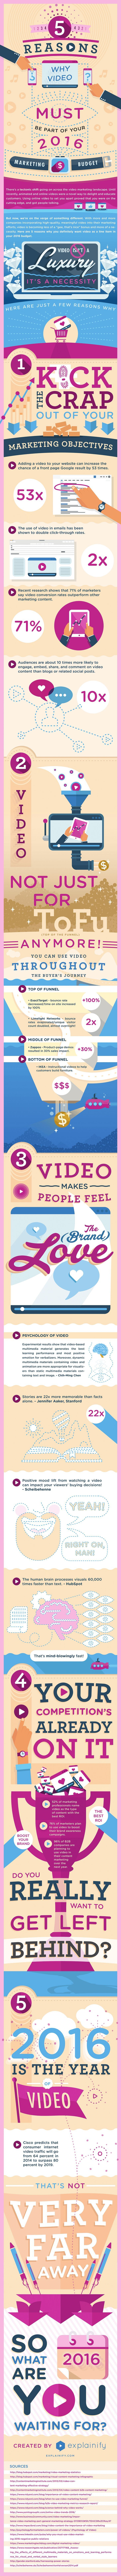 Strengths of Video Marketing - 5 Reasons Video MUST Be Part of Your 2016 Marketing Budget [Infographic]